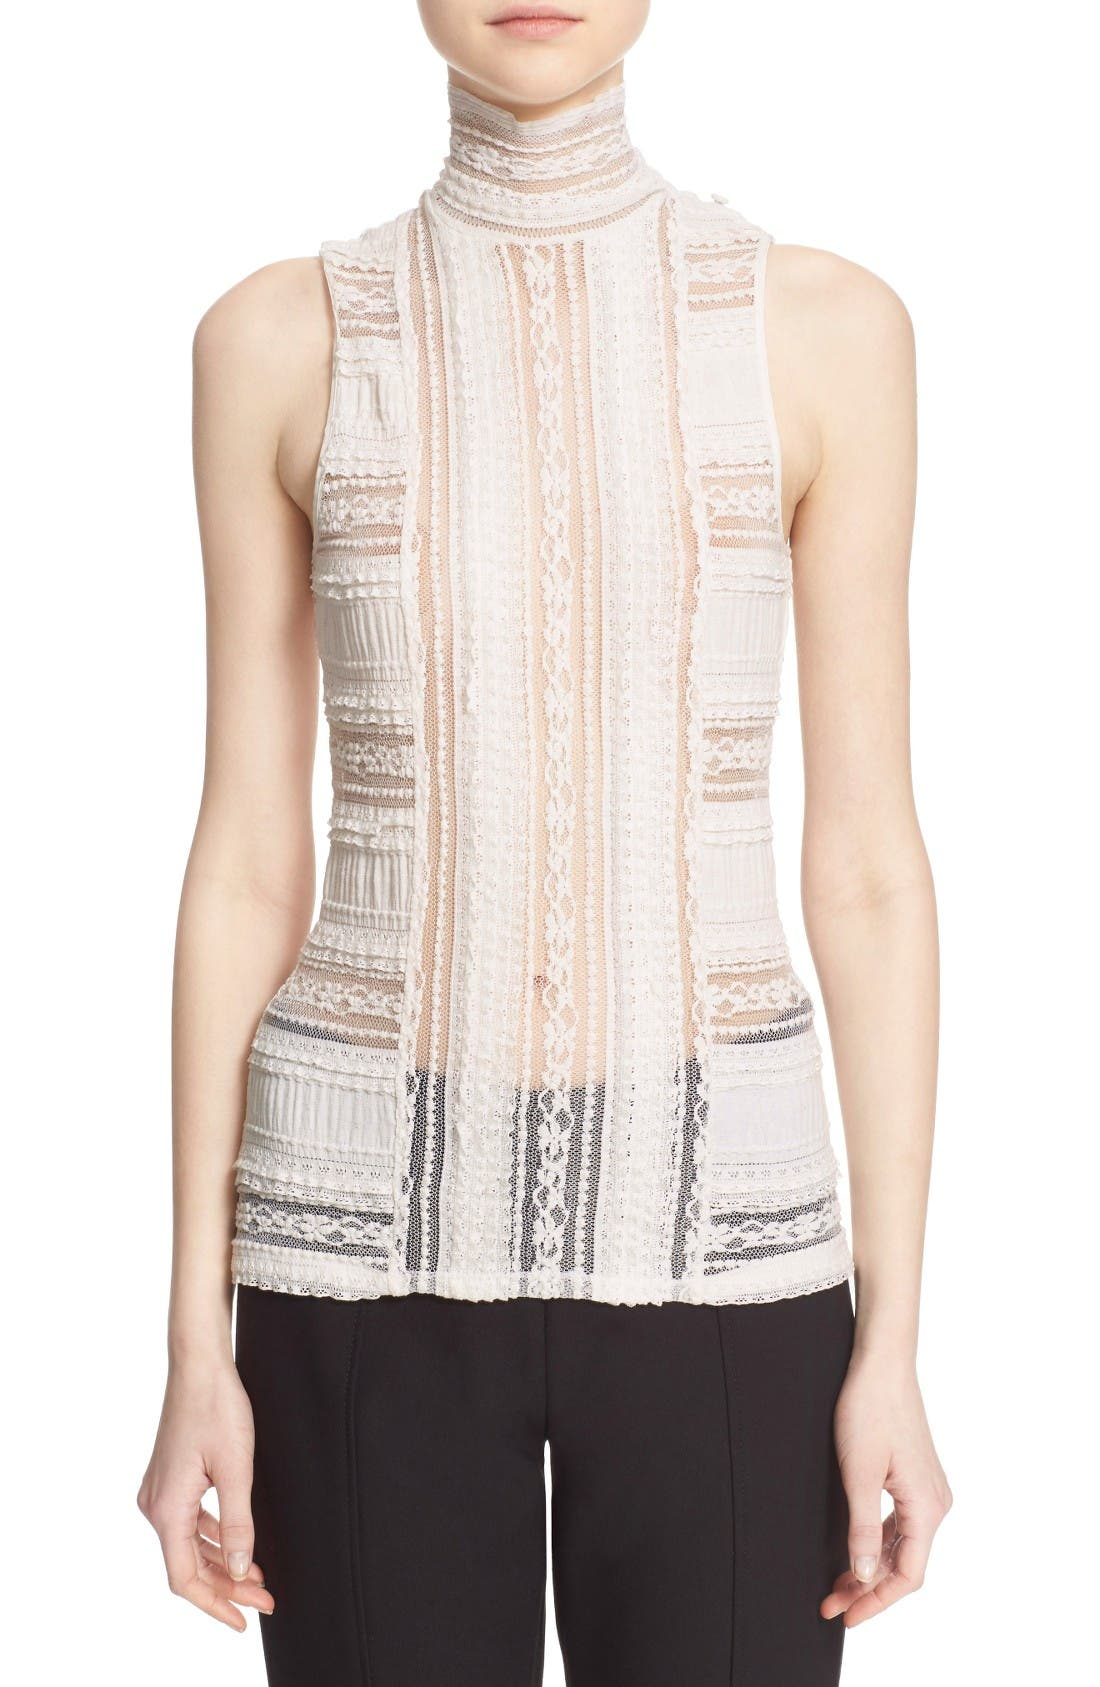 CINQ À SEPT 'Antonia' Sleeveless Lace Turtleneck